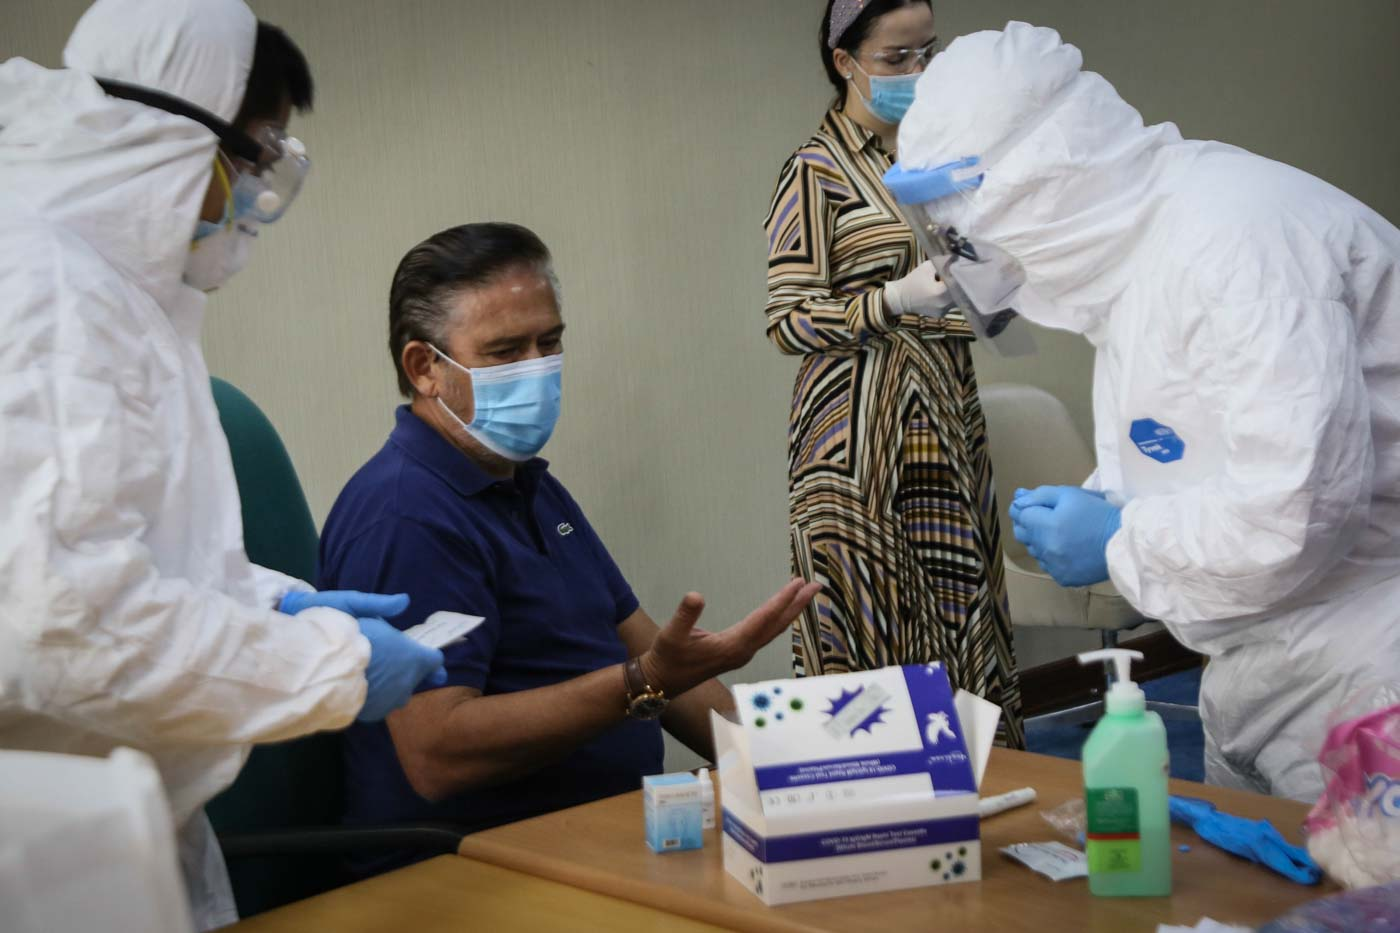 RAPID TEST. Senate President Vicente Sotto III undergoes a rapid coronavirus test before the start of the session on Monday, May 4, 2020. Photo by Louie Sauro Millang/Senate PRIB